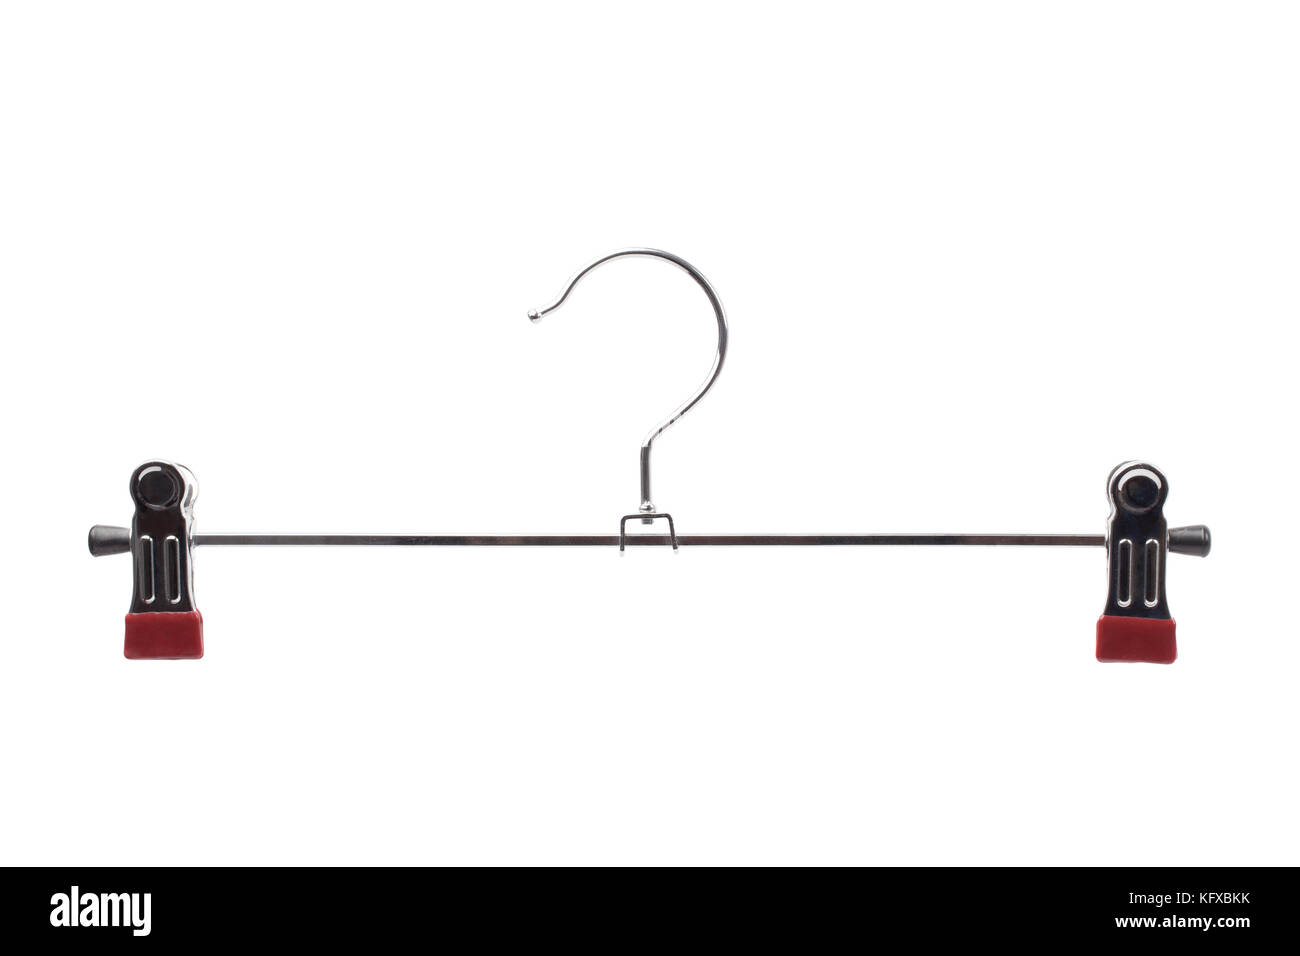 Metallic clothes hanger for trousers and skirts isolated on white color background. - Stock Image